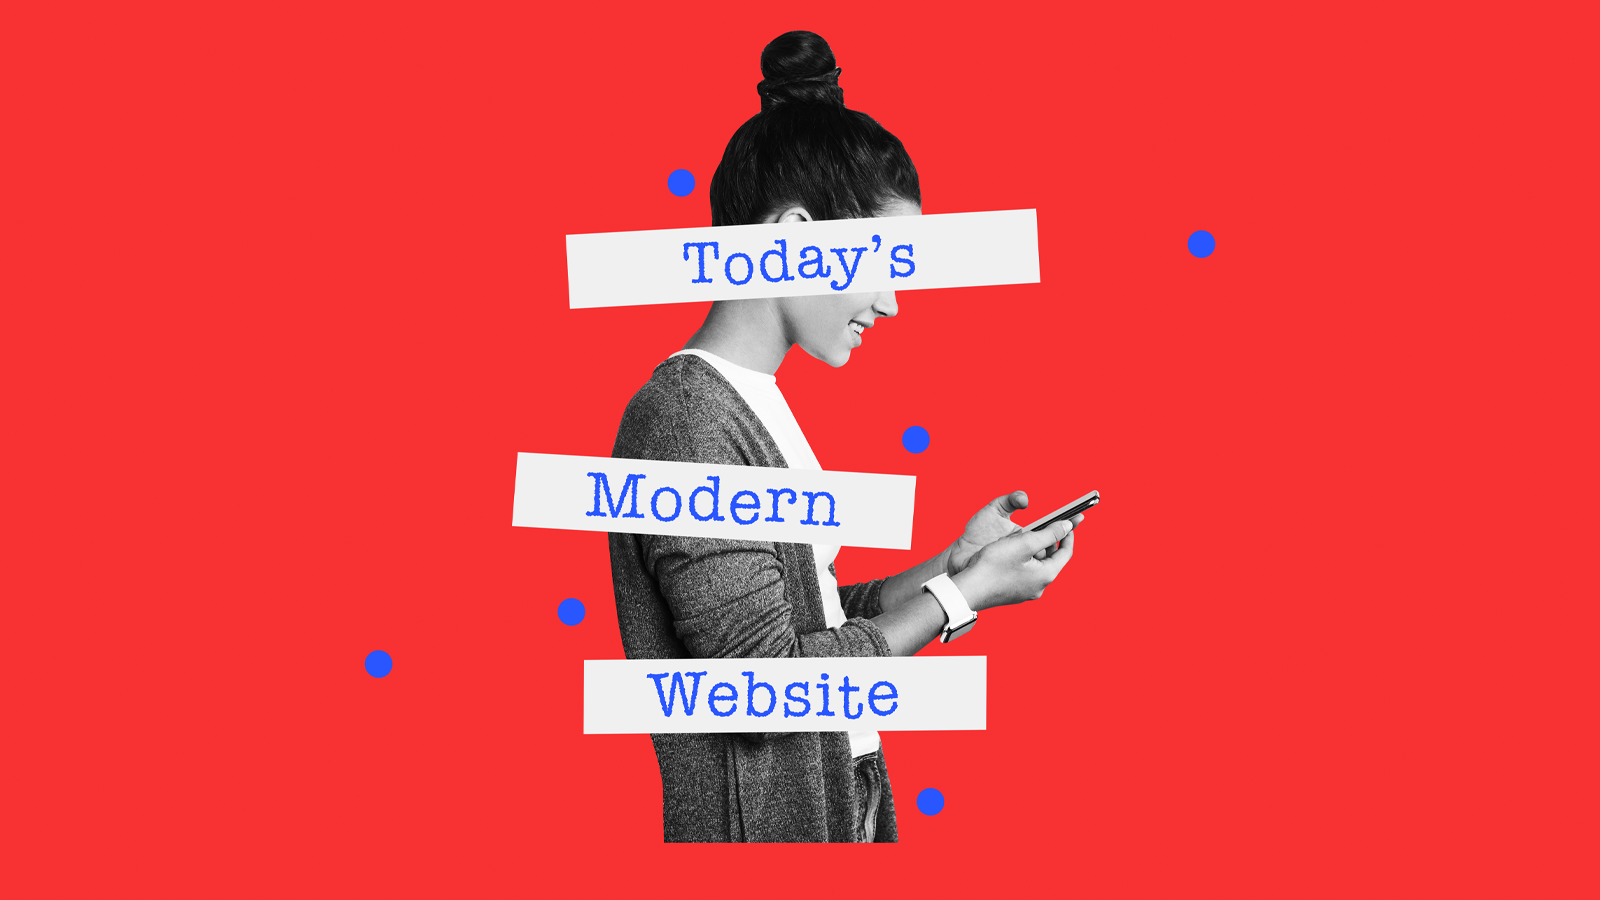 todays-modern-website-header-image